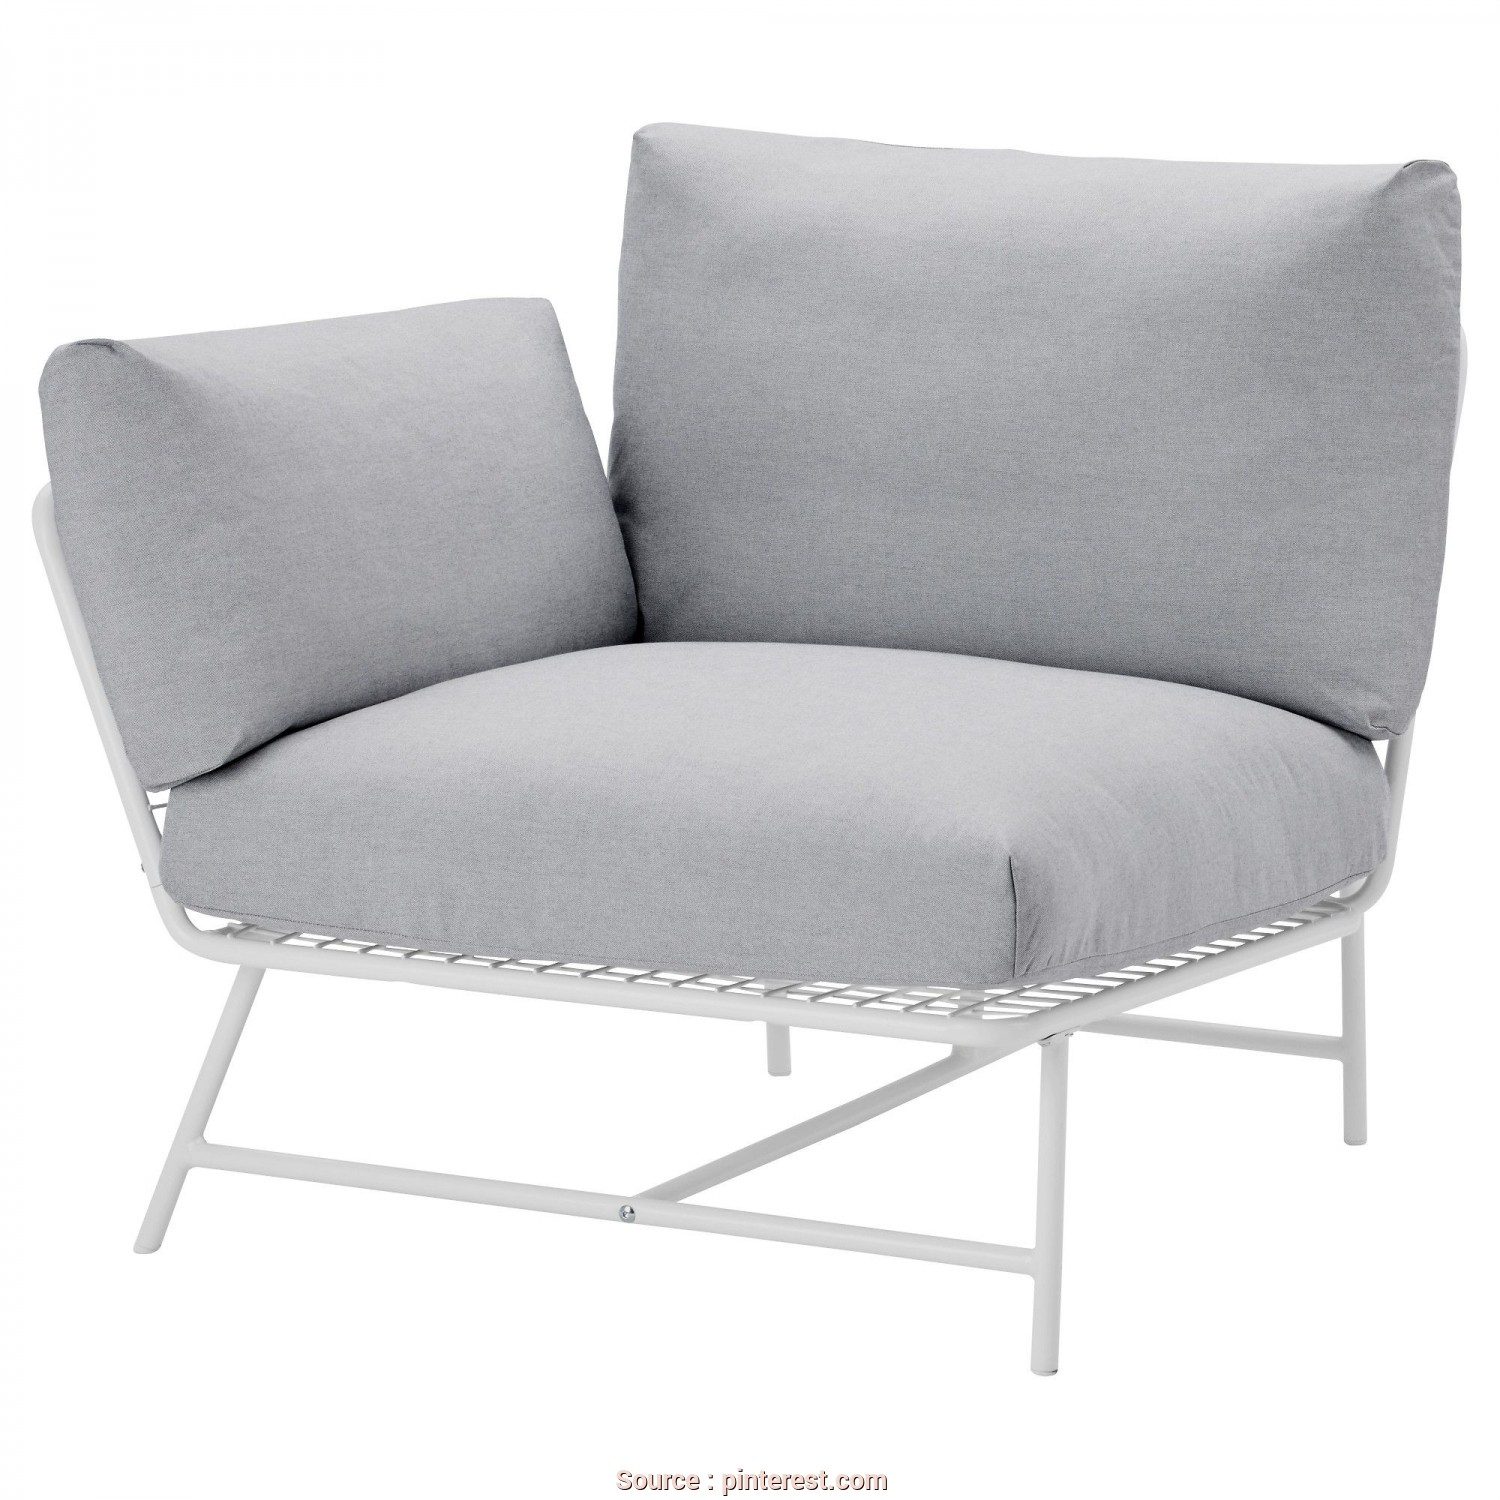 Divano Ikea Ps 2017, Deale IKEA IKEA PS 2017 Corner Easy Chair With Cushions White/Grey, Anti-Slip Backing Keeps, Cushions Firmly In Place